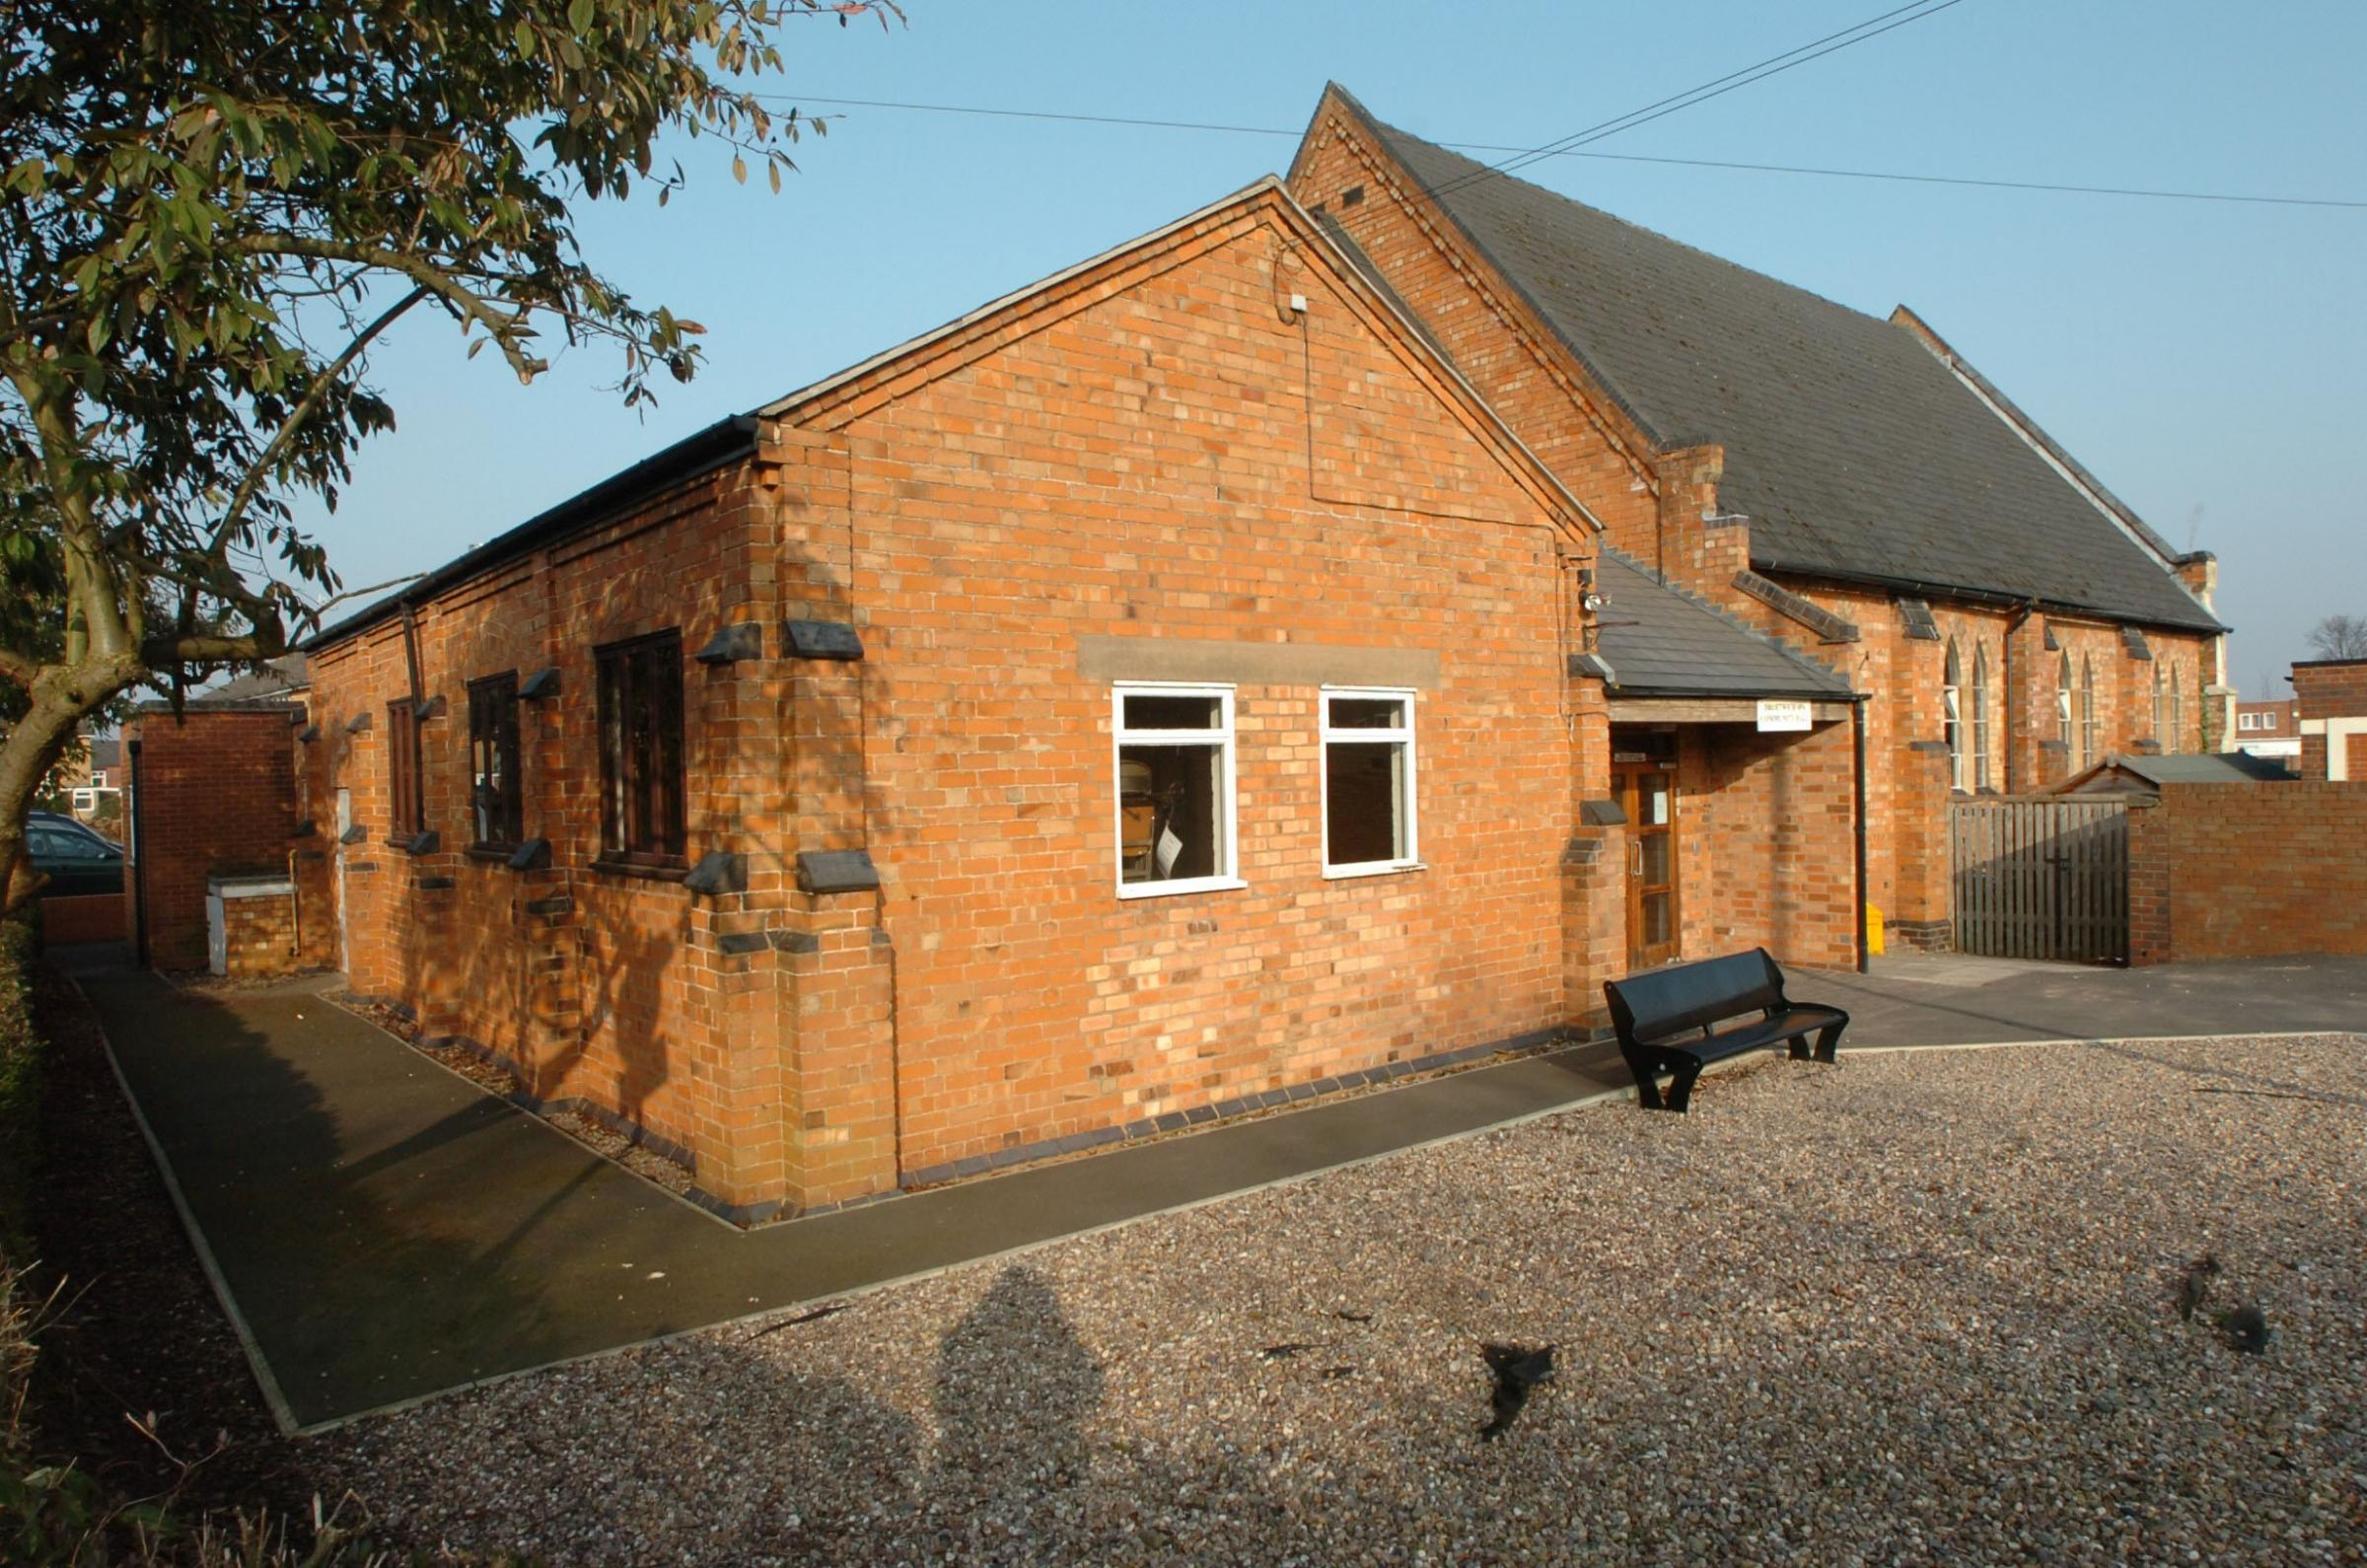 Community Hall Droitwich.